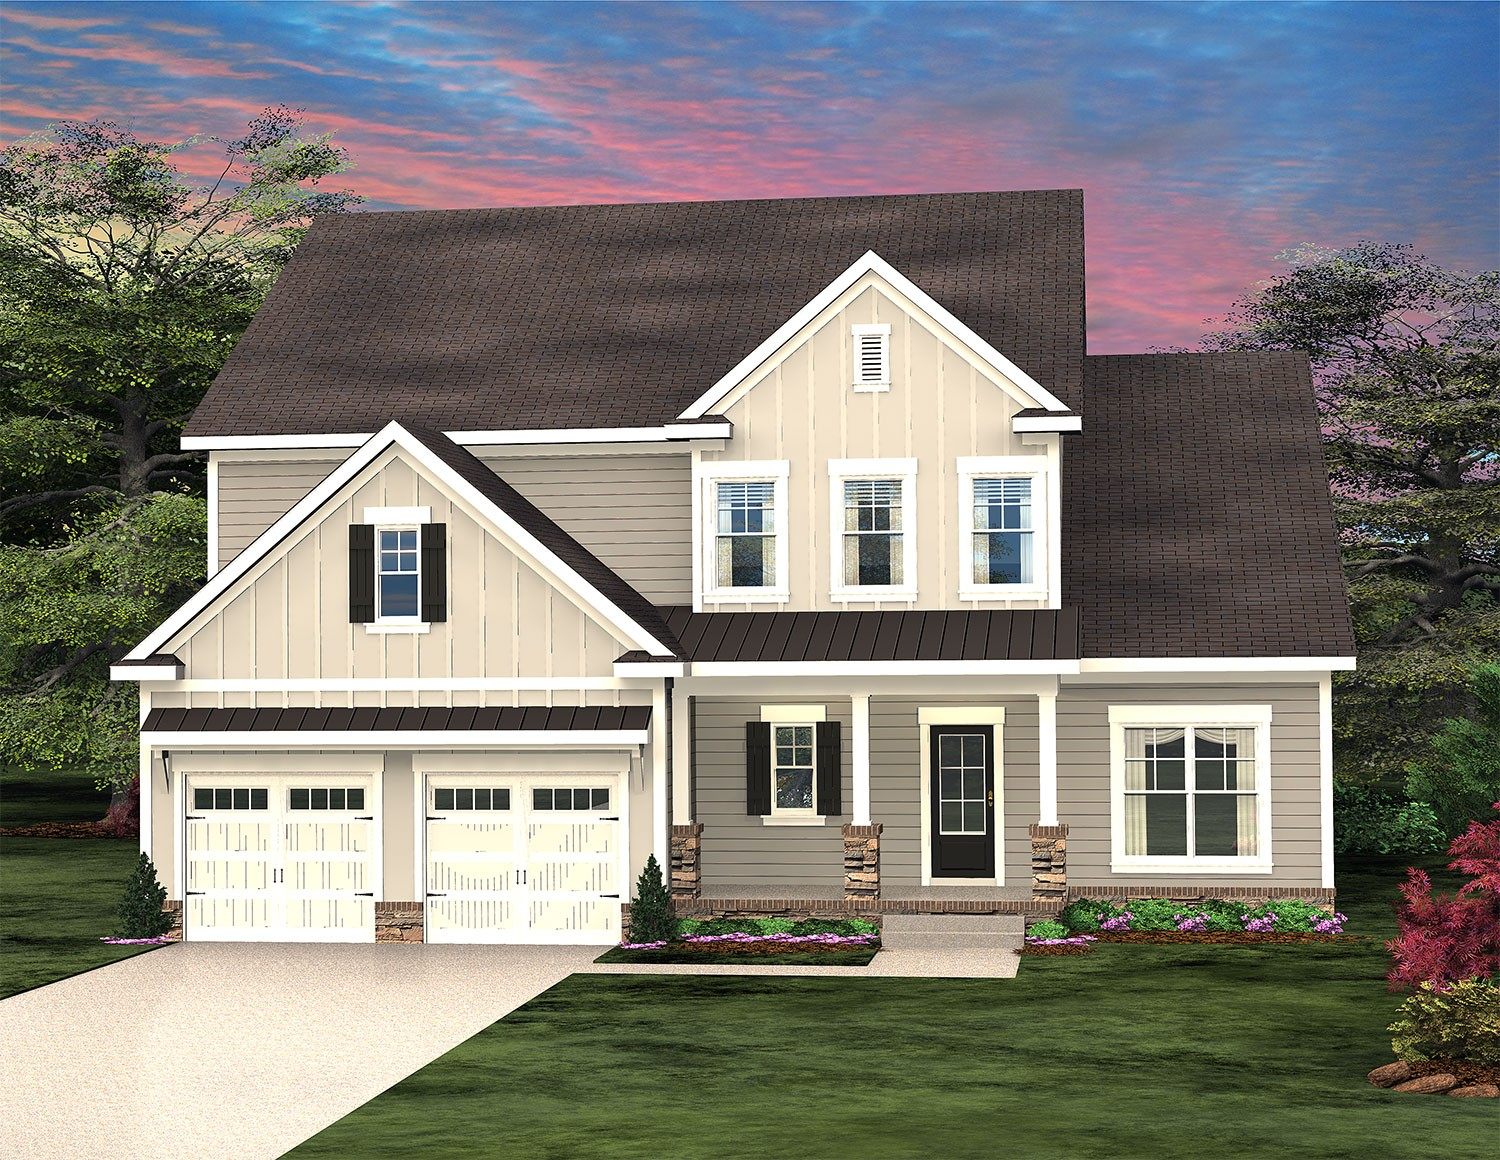 Gorgeous Jamestown plan.  4 or 5 bedrooms, one could be an office, freestanding soaking bathtub, hardwoods, tile, upgraded chef style kitchen is perfect for any gathering and is large enough for entertaining.  The covered back patio has a glass sliding panel from the great room.  The porch is cable ready with a cozy wood-burning fireplace, just bring your TV! Photos are of a similar completed home. READY MAY 2021